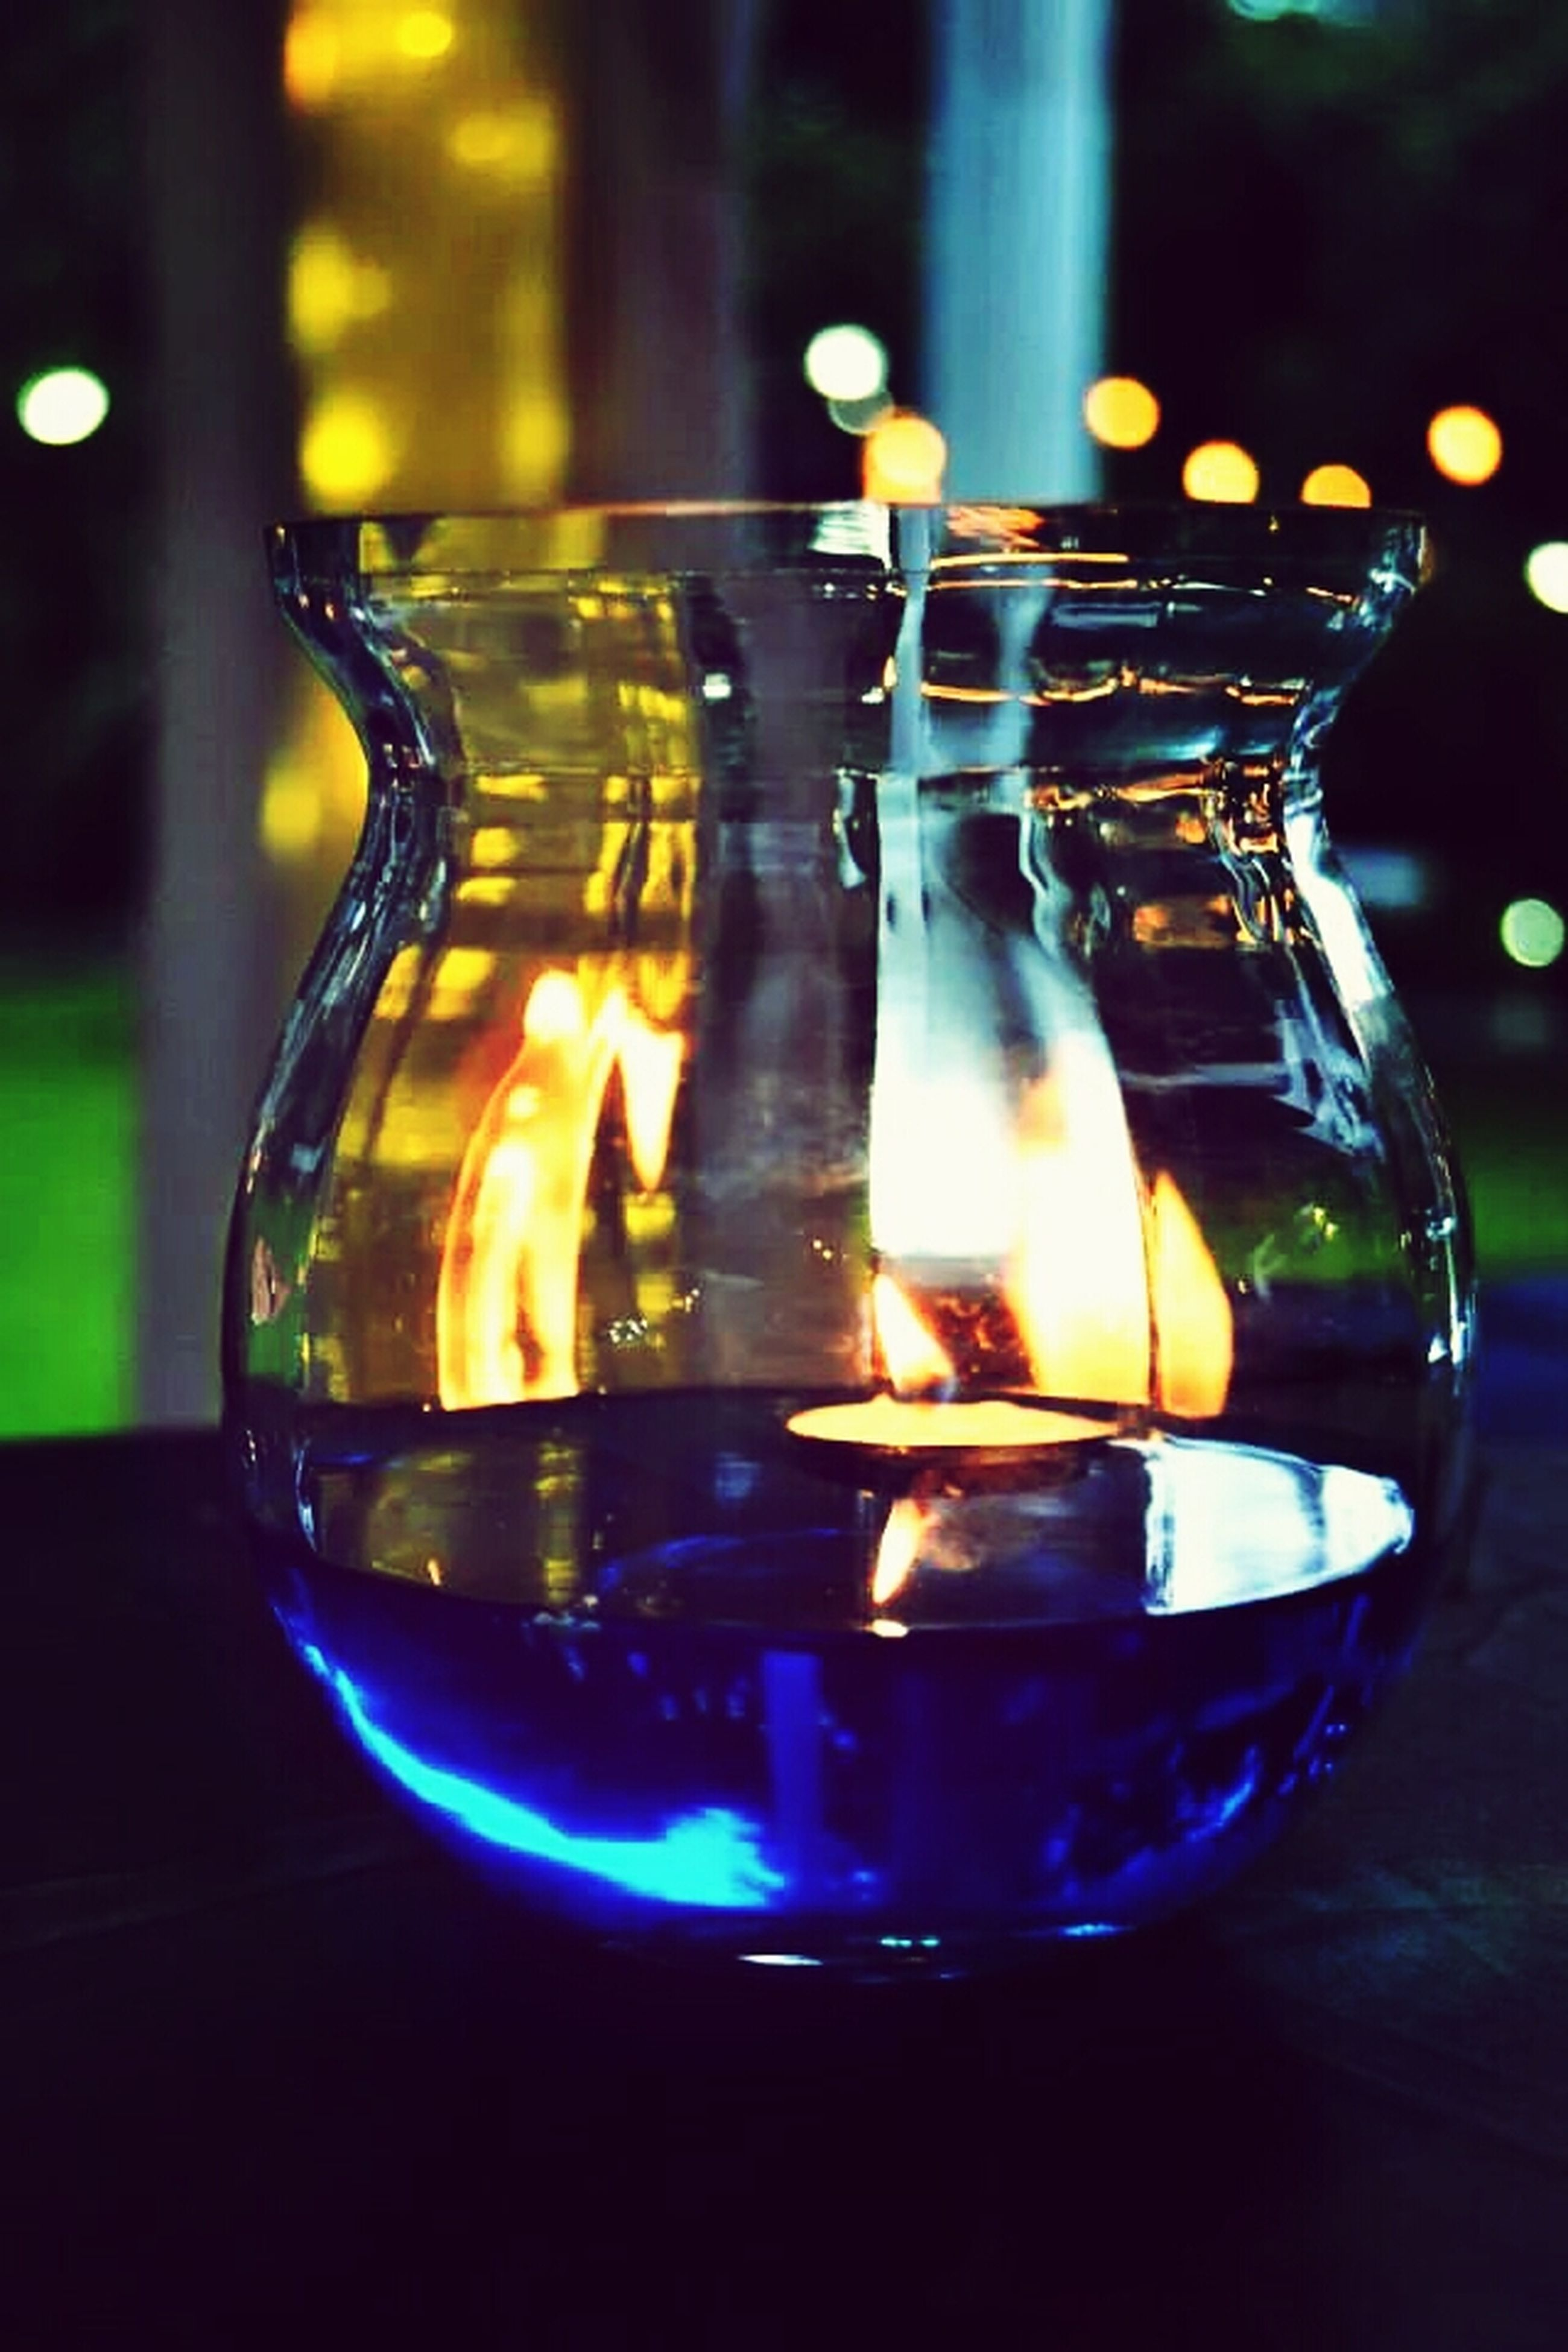 illuminated, indoors, glowing, glass - material, close-up, lighting equipment, burning, night, candle, focus on foreground, light - natural phenomenon, flame, reflection, transparent, yellow, no people, decoration, table, motion, still life